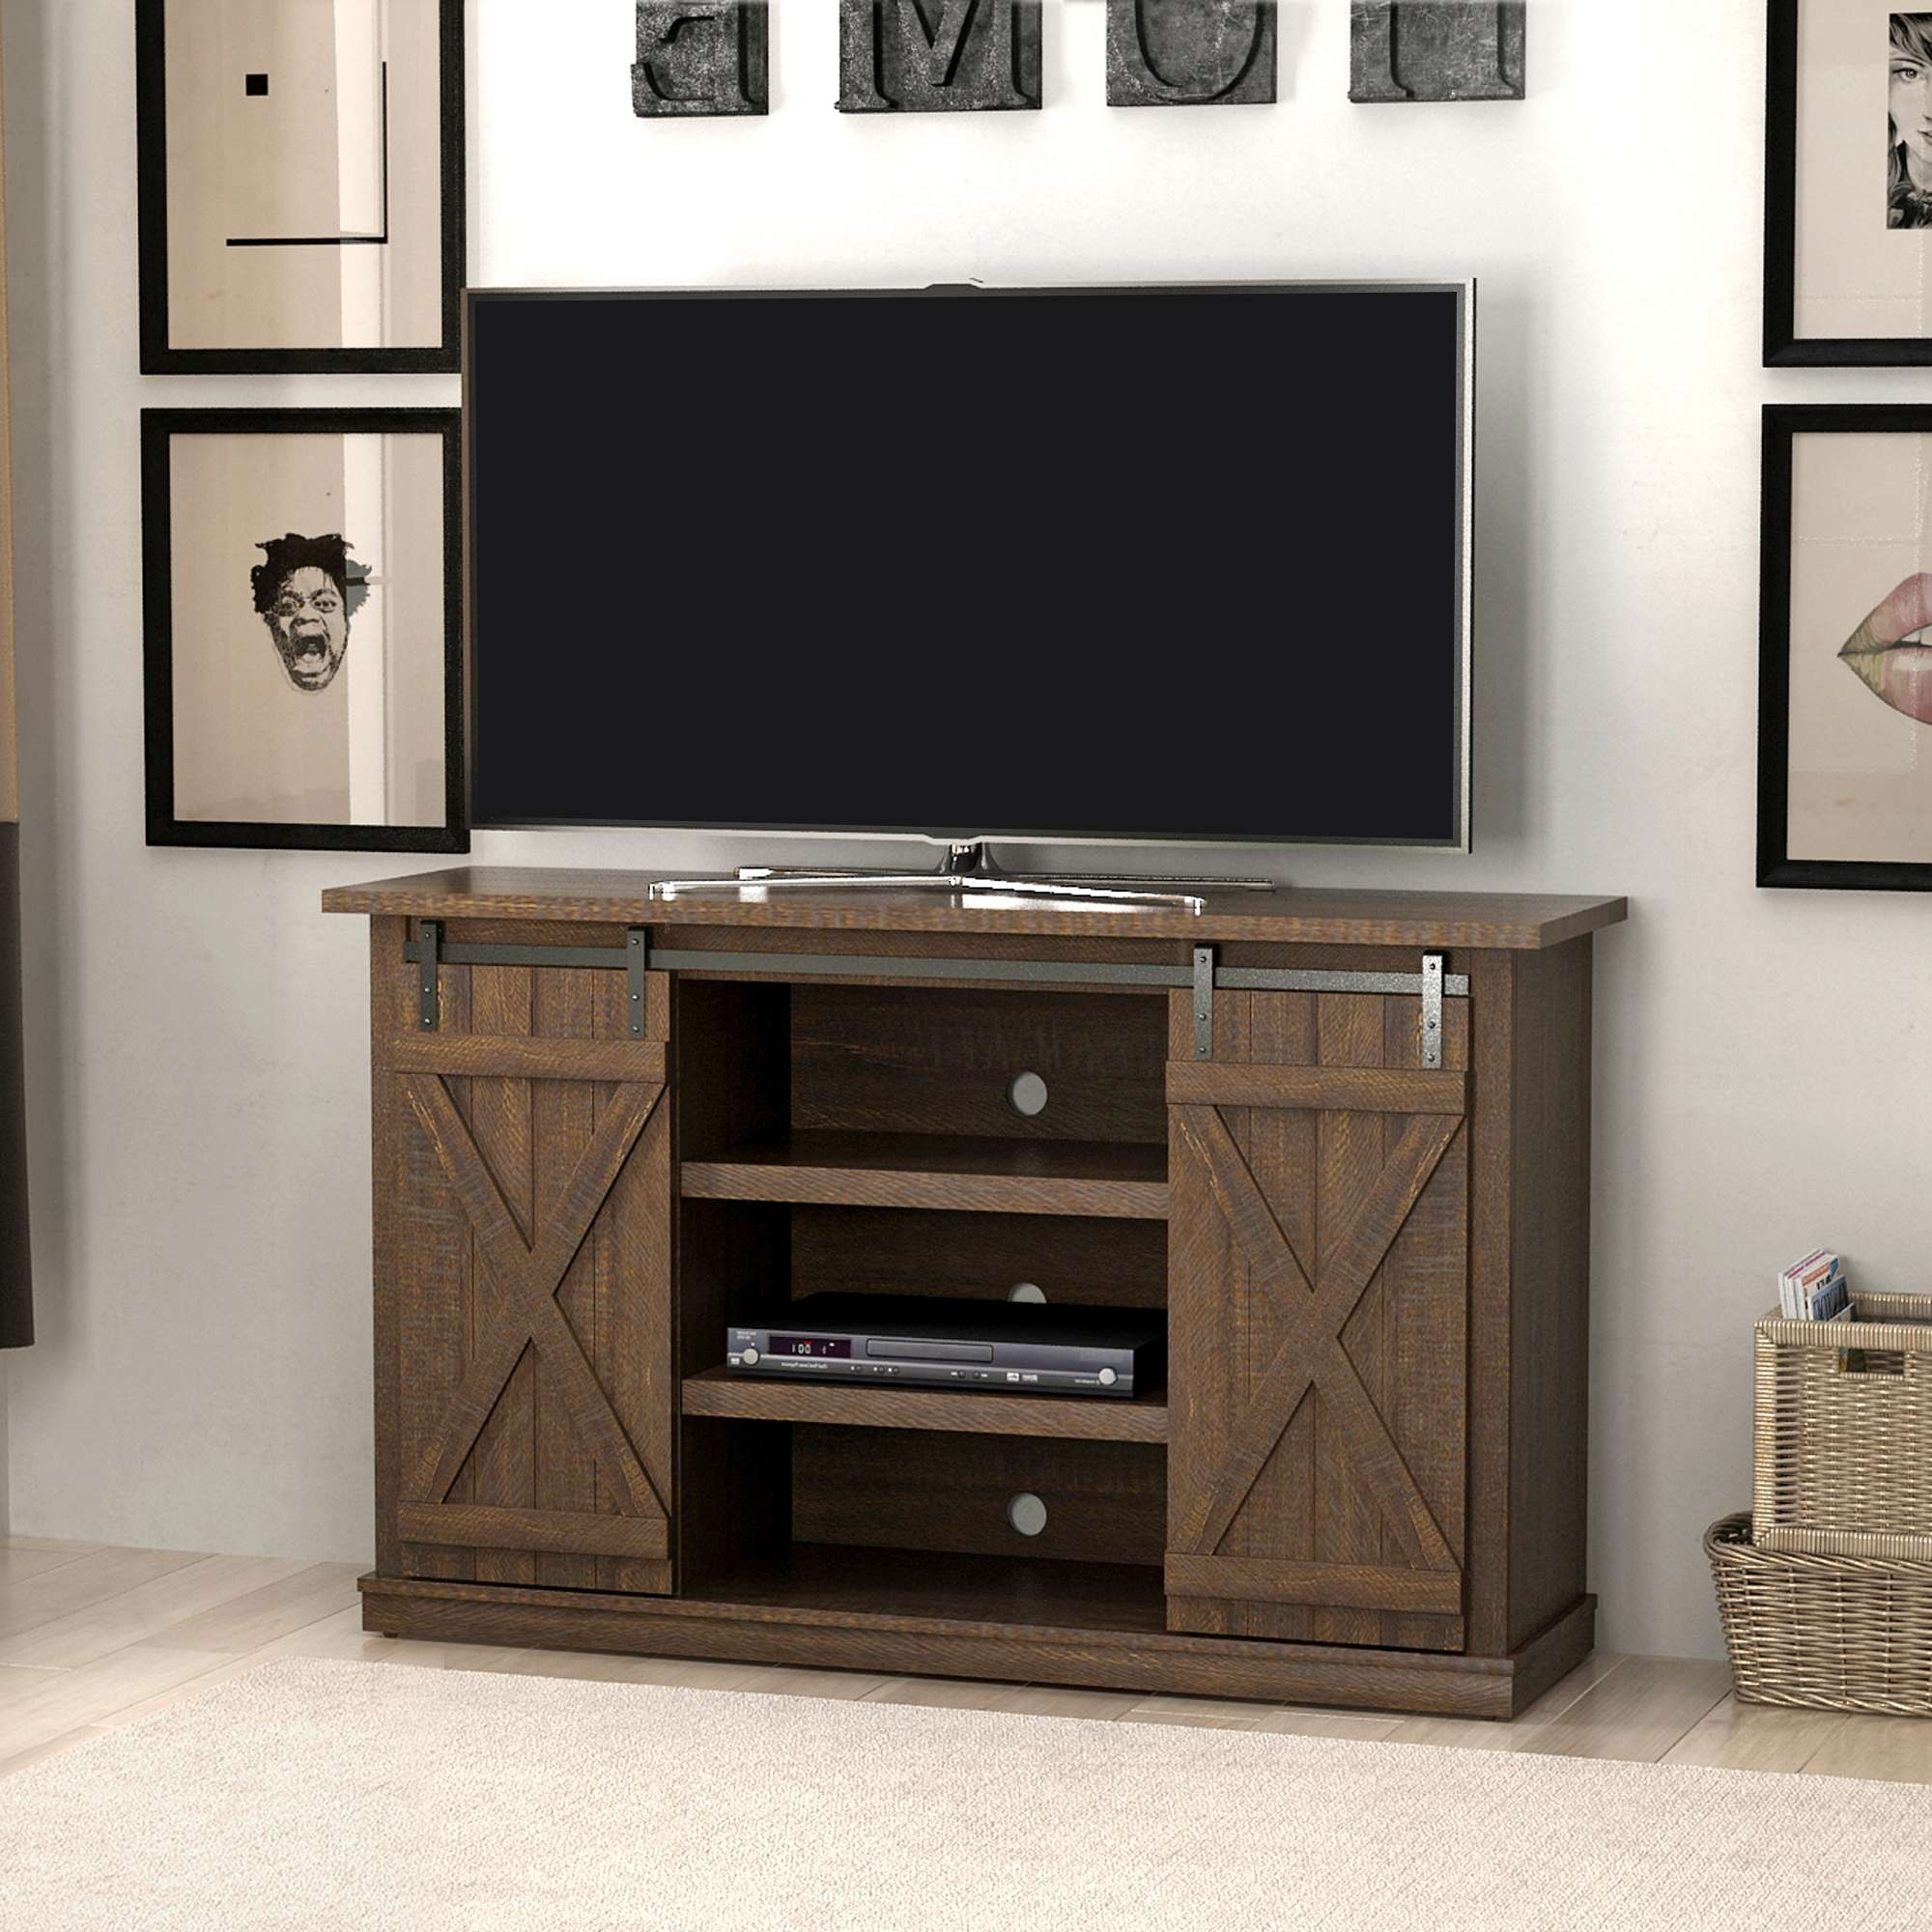 Tv Stands – Walmart Pertaining To Tv Stands For Large Tvs (View 13 of 15)